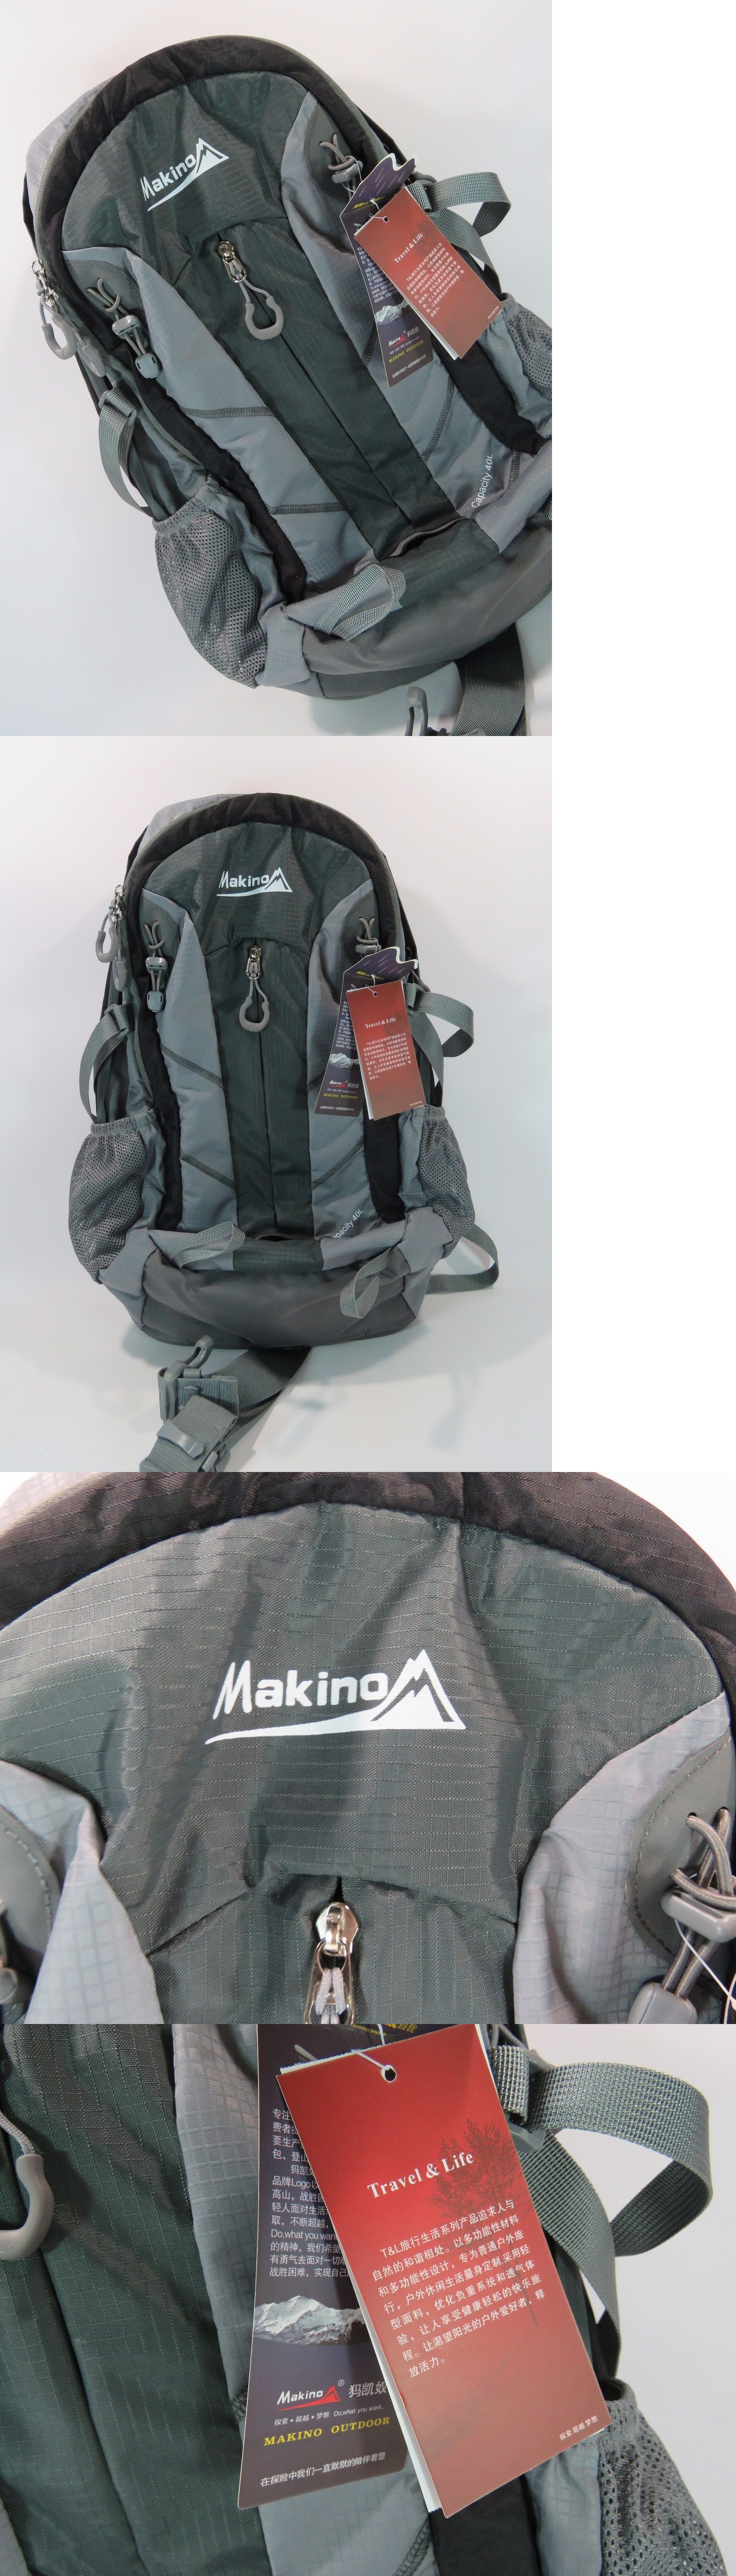 Other Camping Hiking Backpacks 36109  Makino 40L Travel Backpack Camping  Rucksack With Internal Frame Outdoor 1645e5fdfe